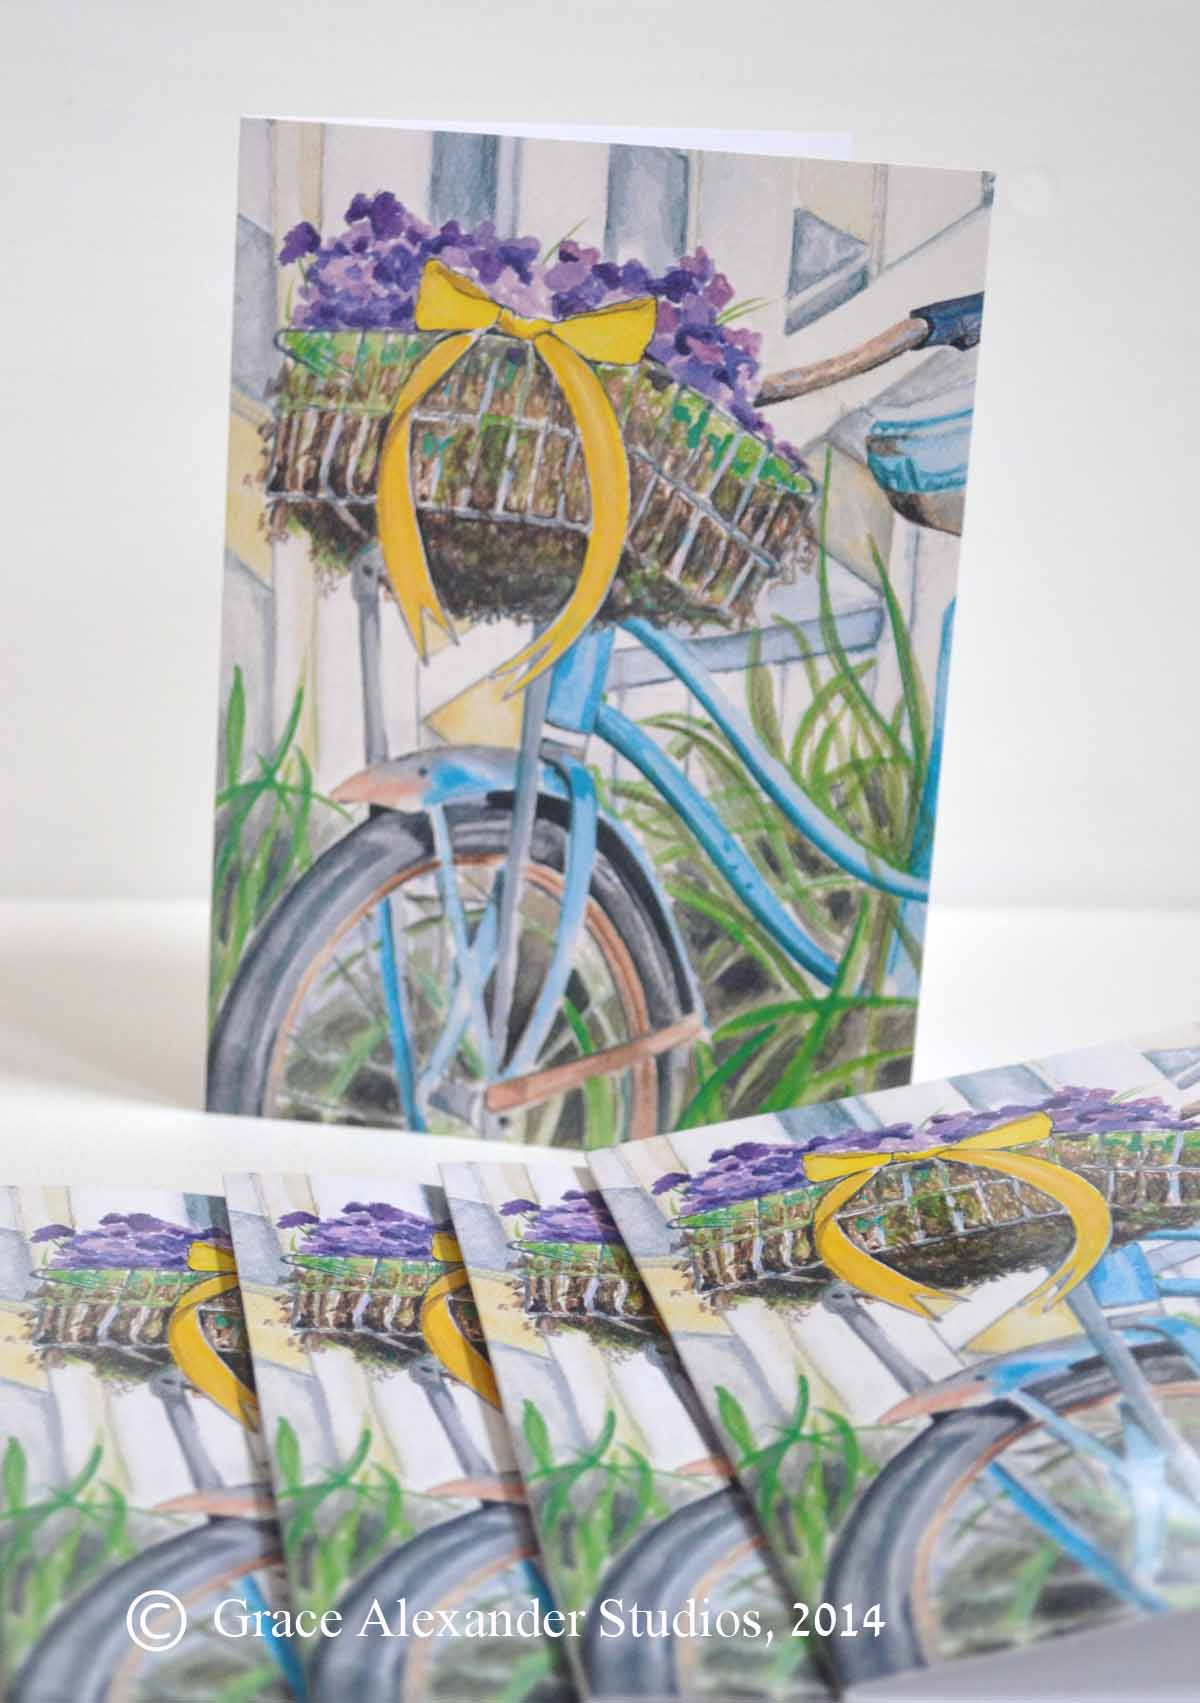 Set of 6 5x7 Envelopes and Stationary Blank Greeting Cards of Watercolor Prints of Spring Bicycle Basket with Violets-violets, spring, bicycle, bike riding, watercolor print cards, bicycle greeting cards